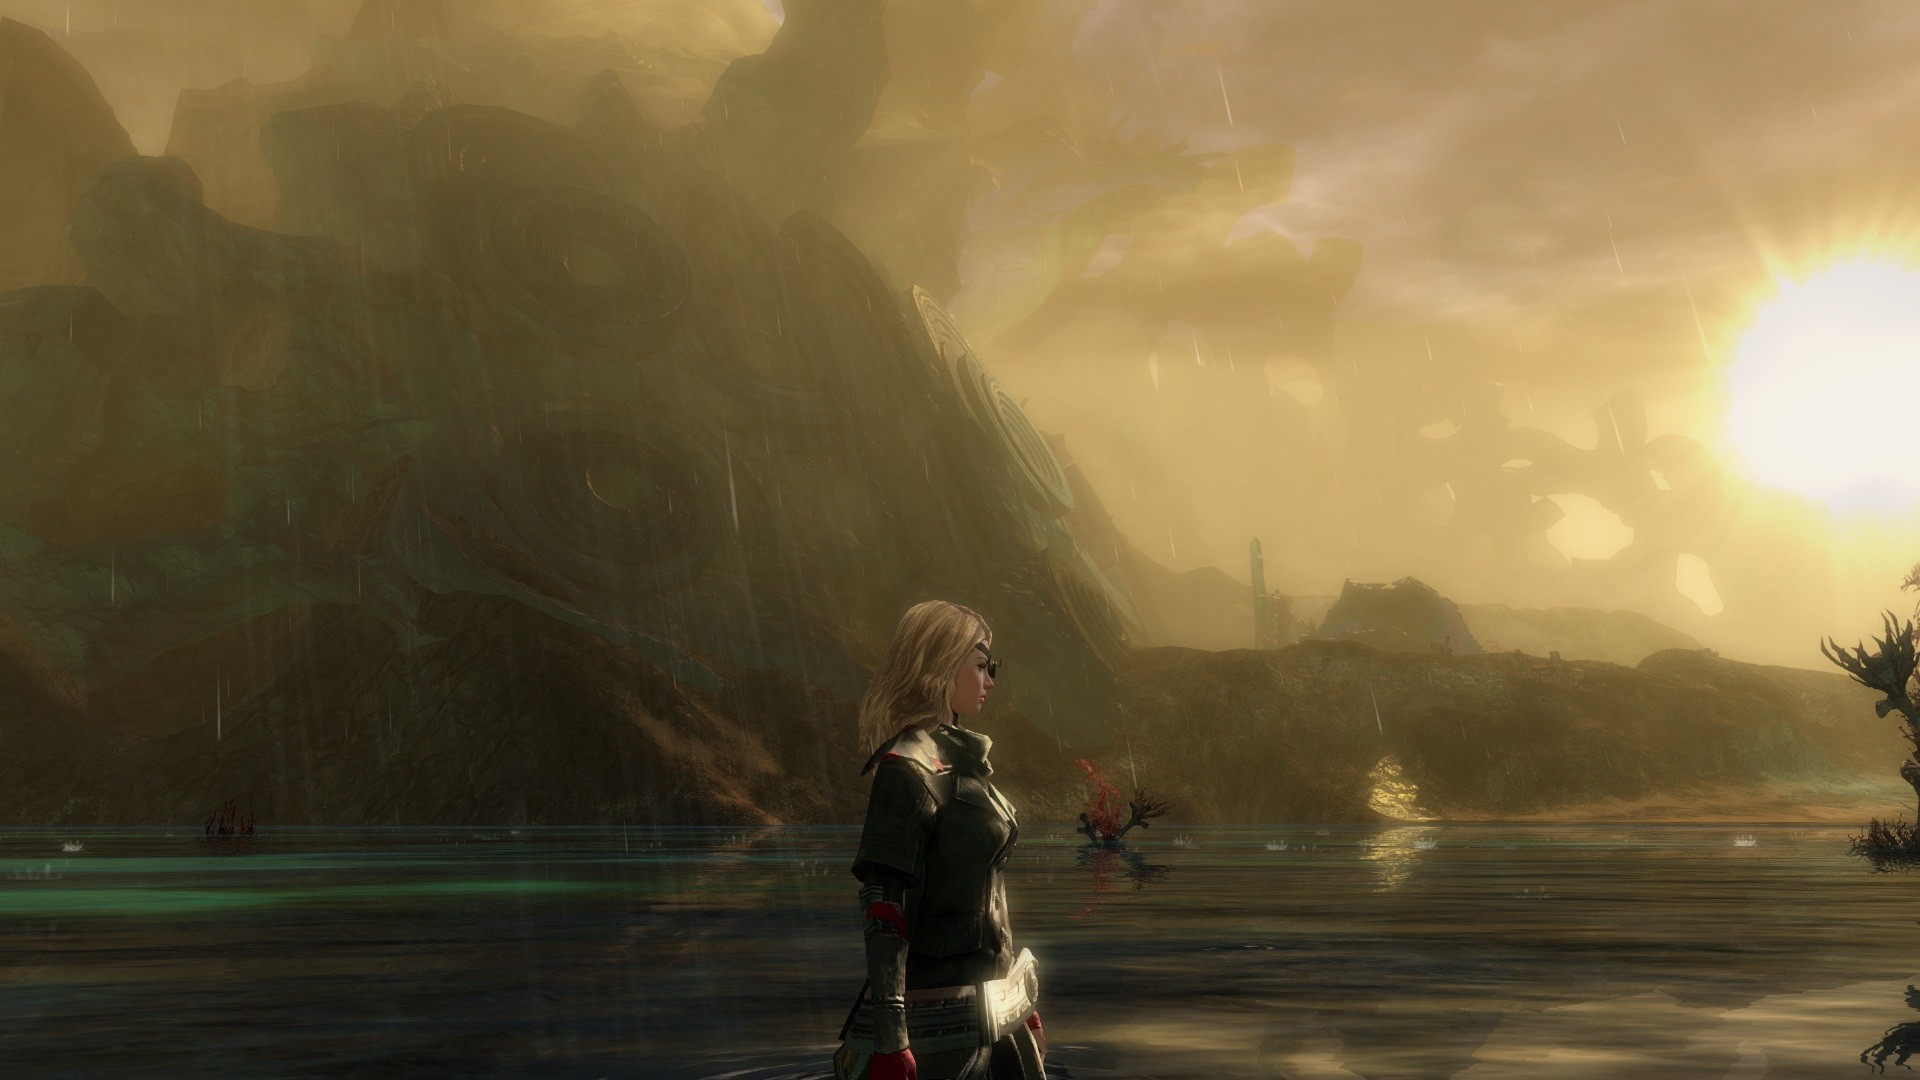 Guild Wars 2 - Gw2 Max Settings